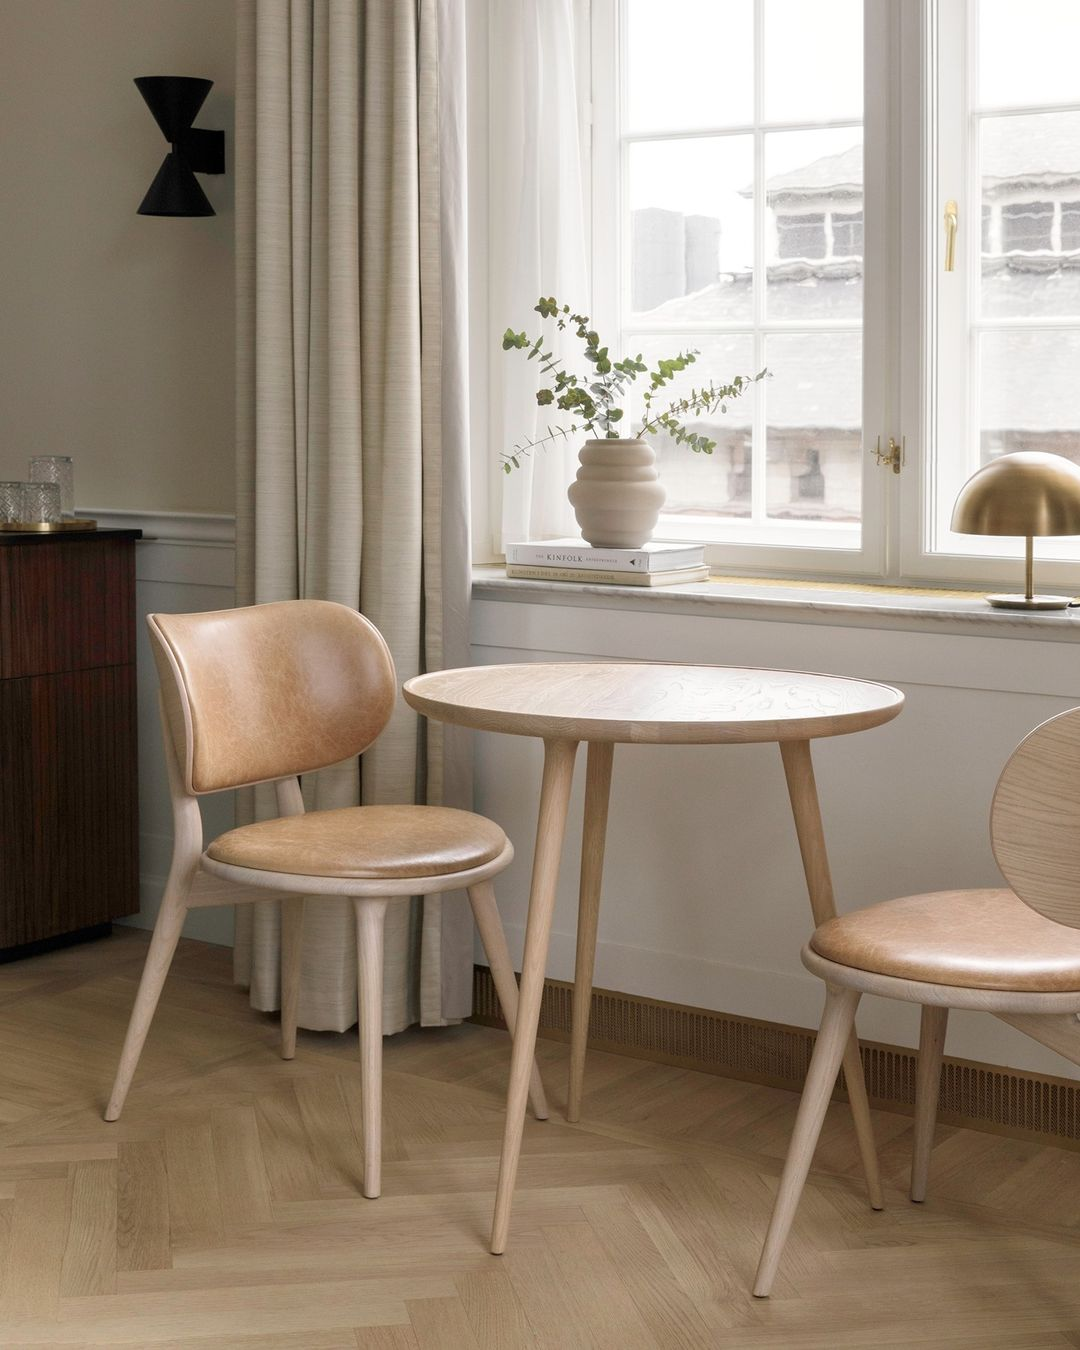 The Dining Chairs & Accent Café Table in...